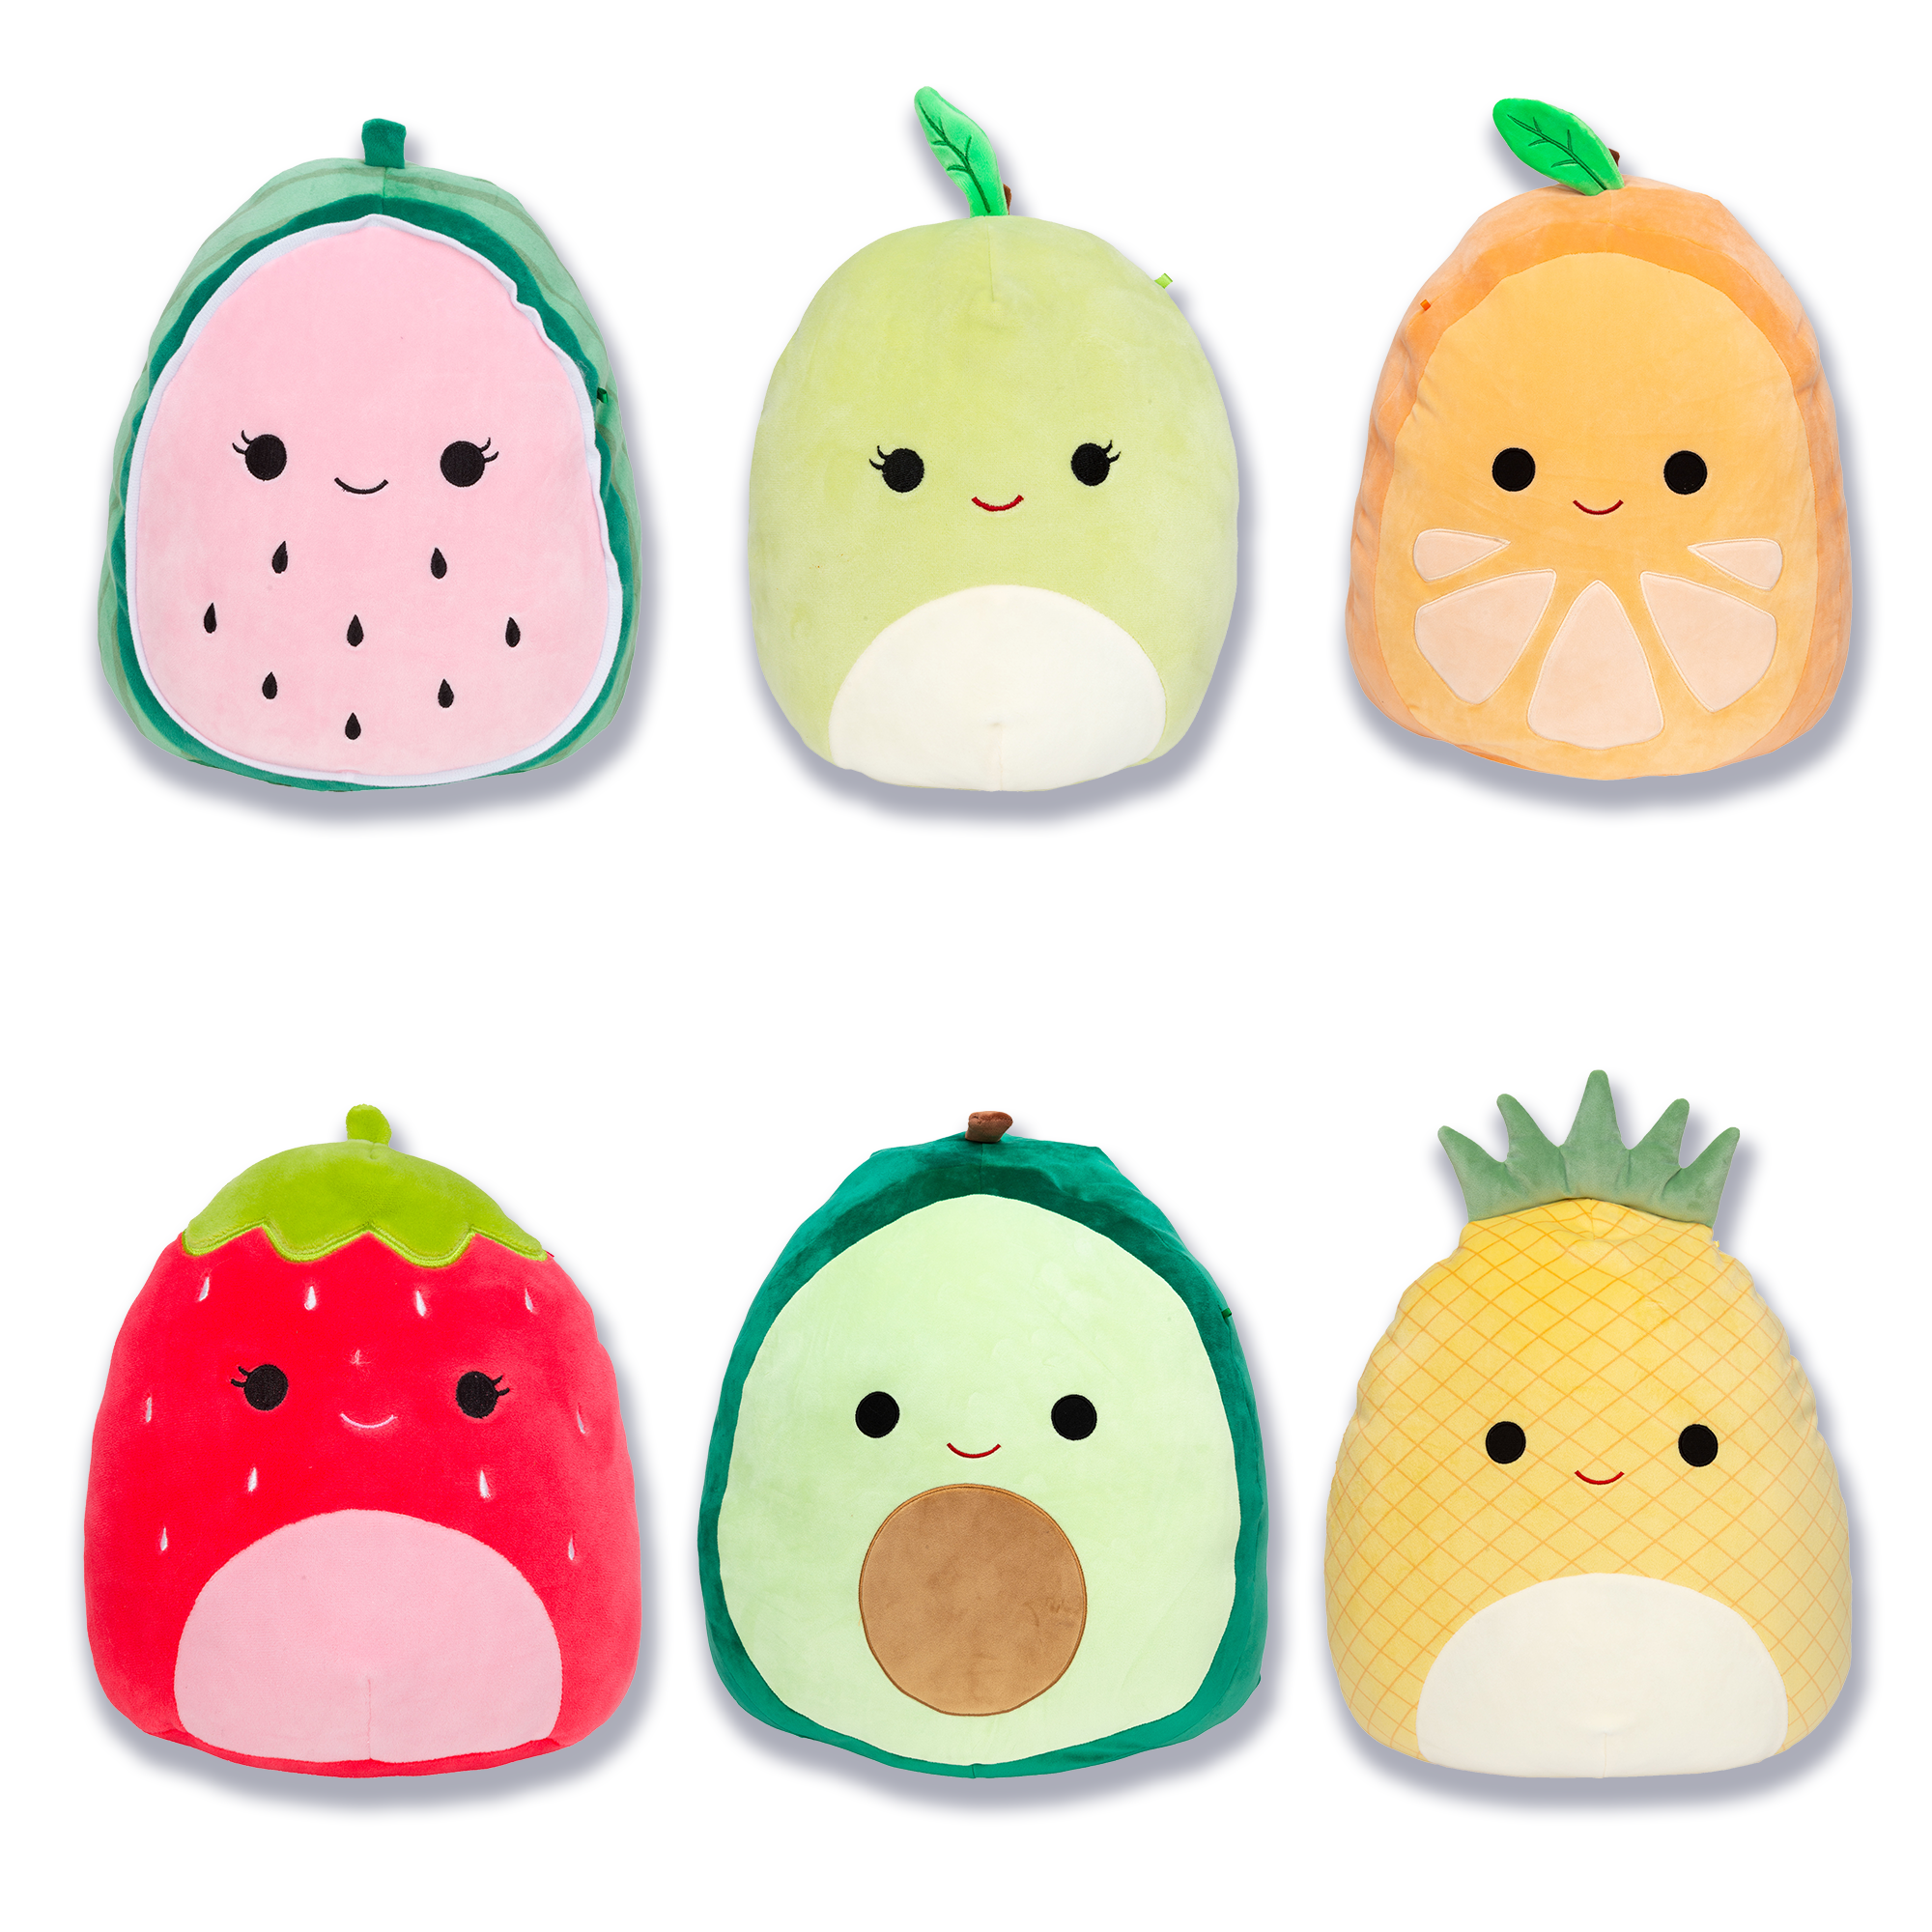 Fruit Squad Pack Squishmallows Cute Stuffed Animals Food Pillows Animal Pillows